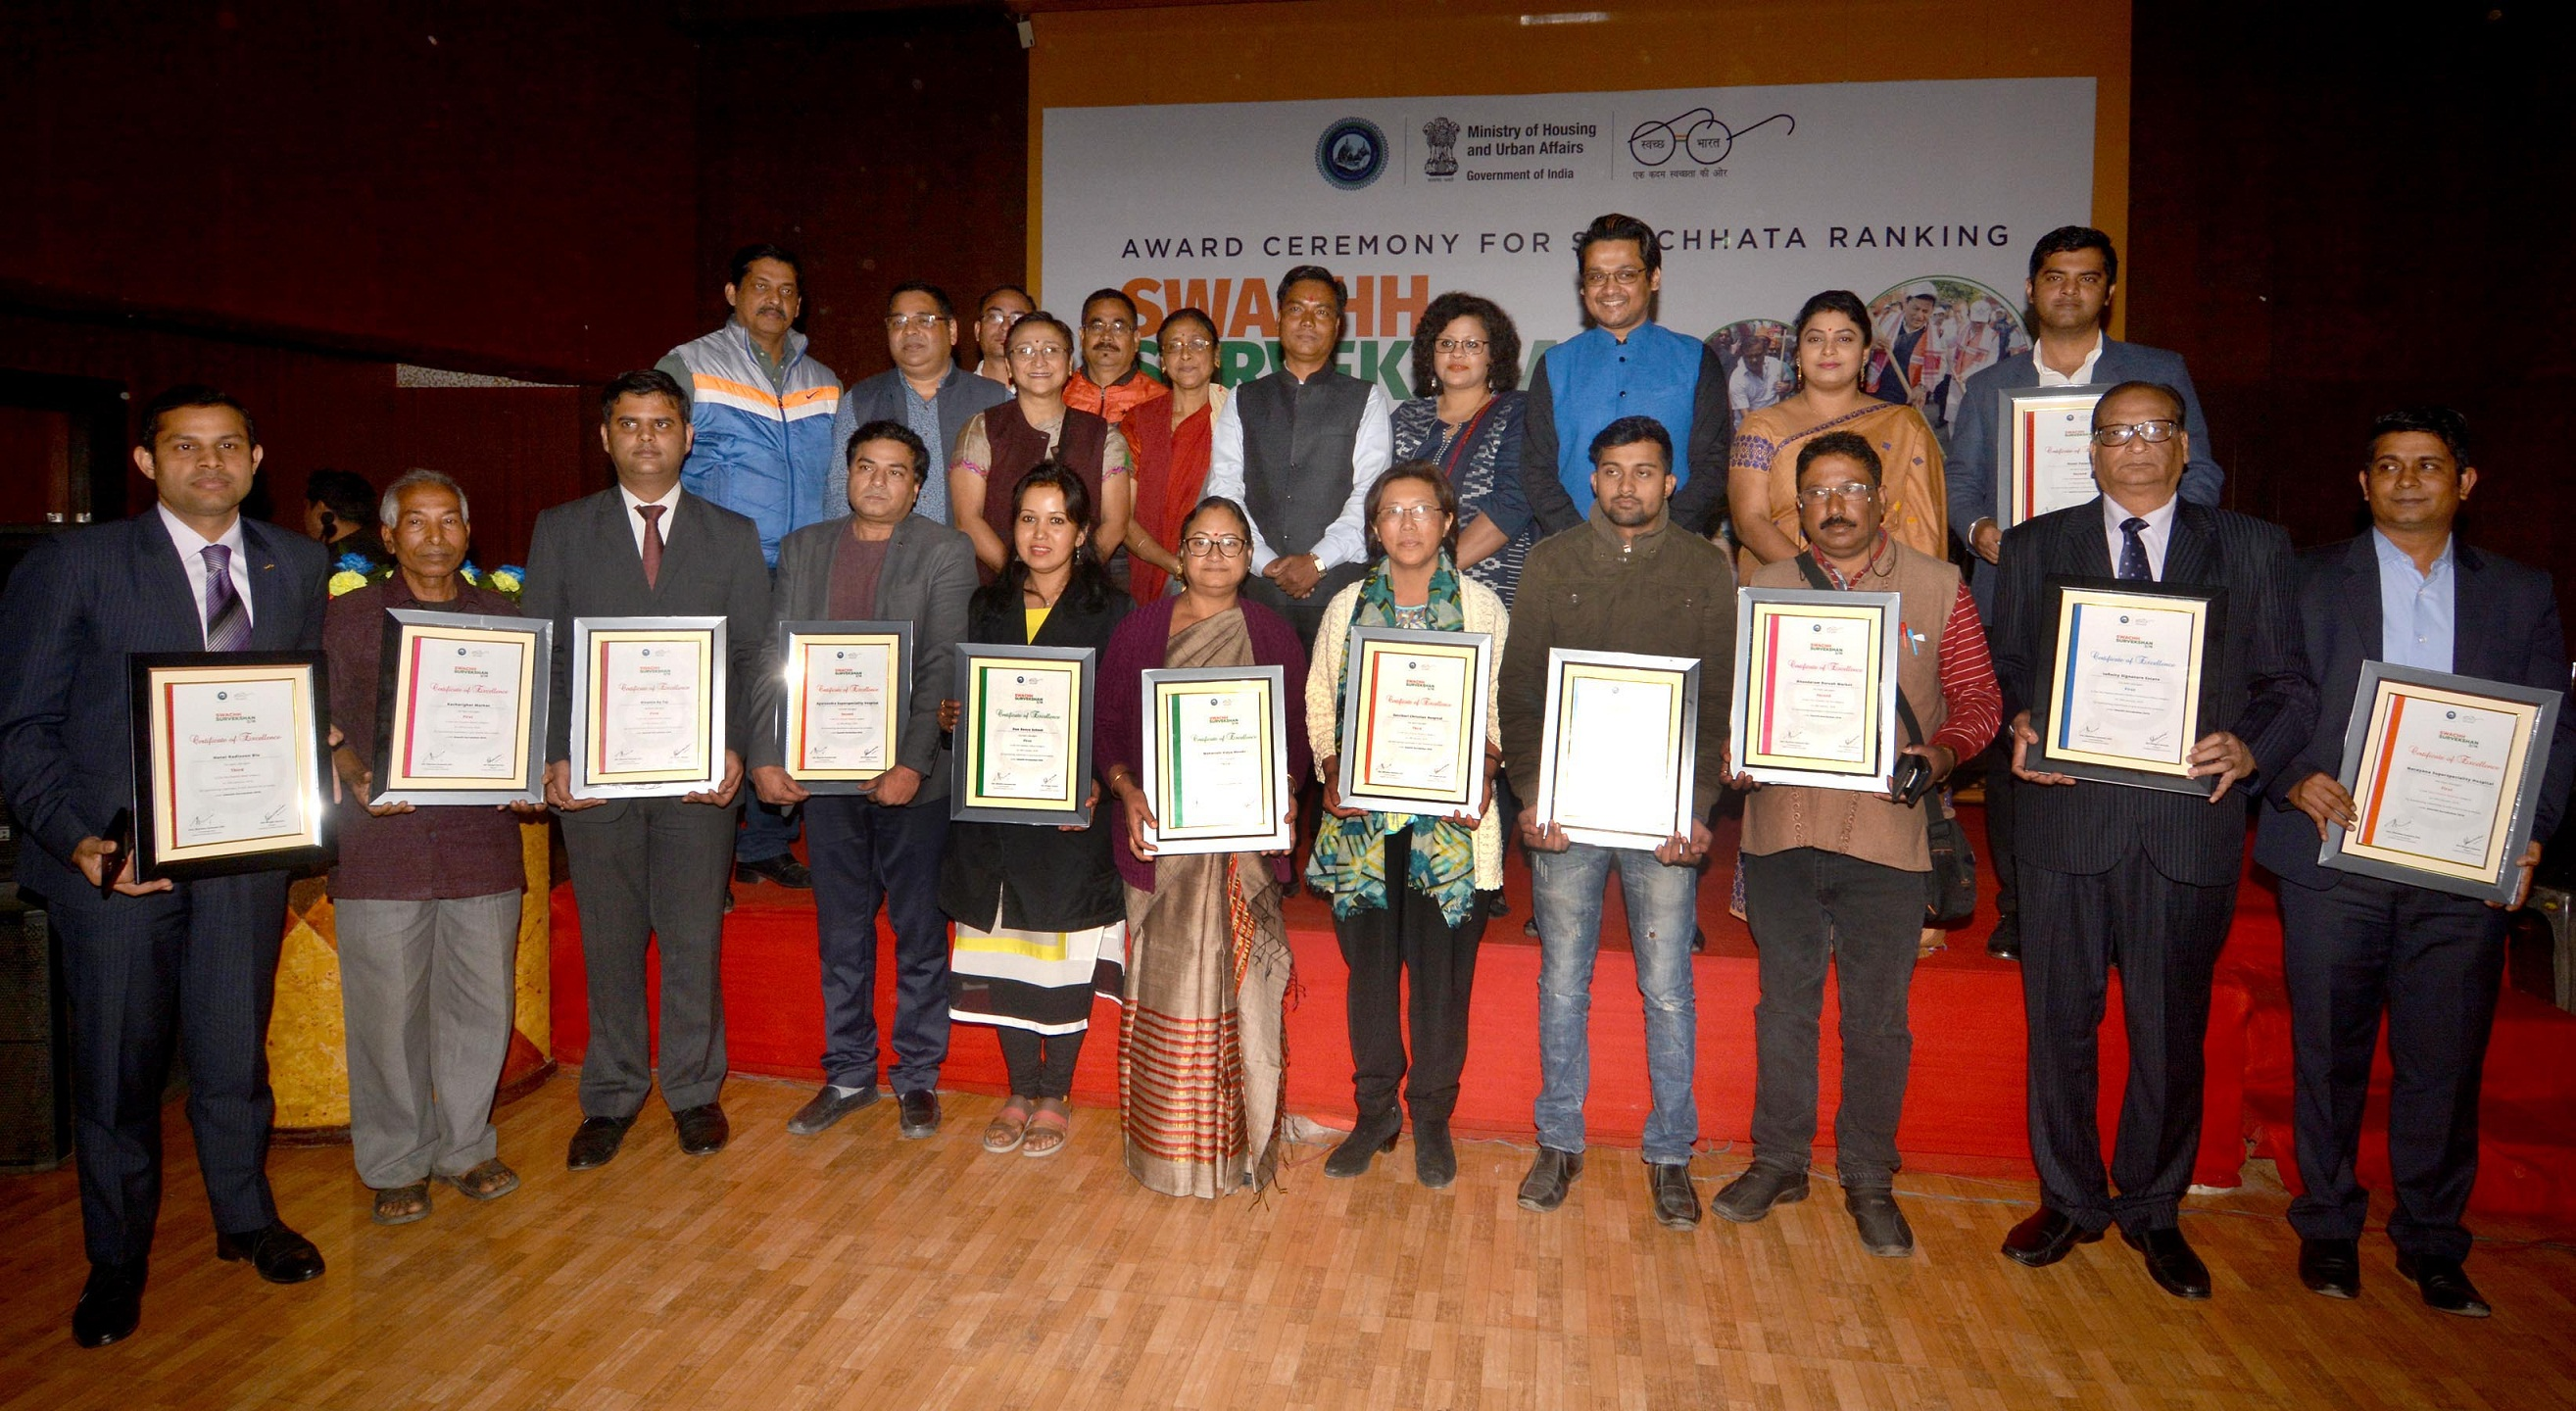 Winners with Swachh Survekshan cleanliness awards in Guwahati on Thursday. UB